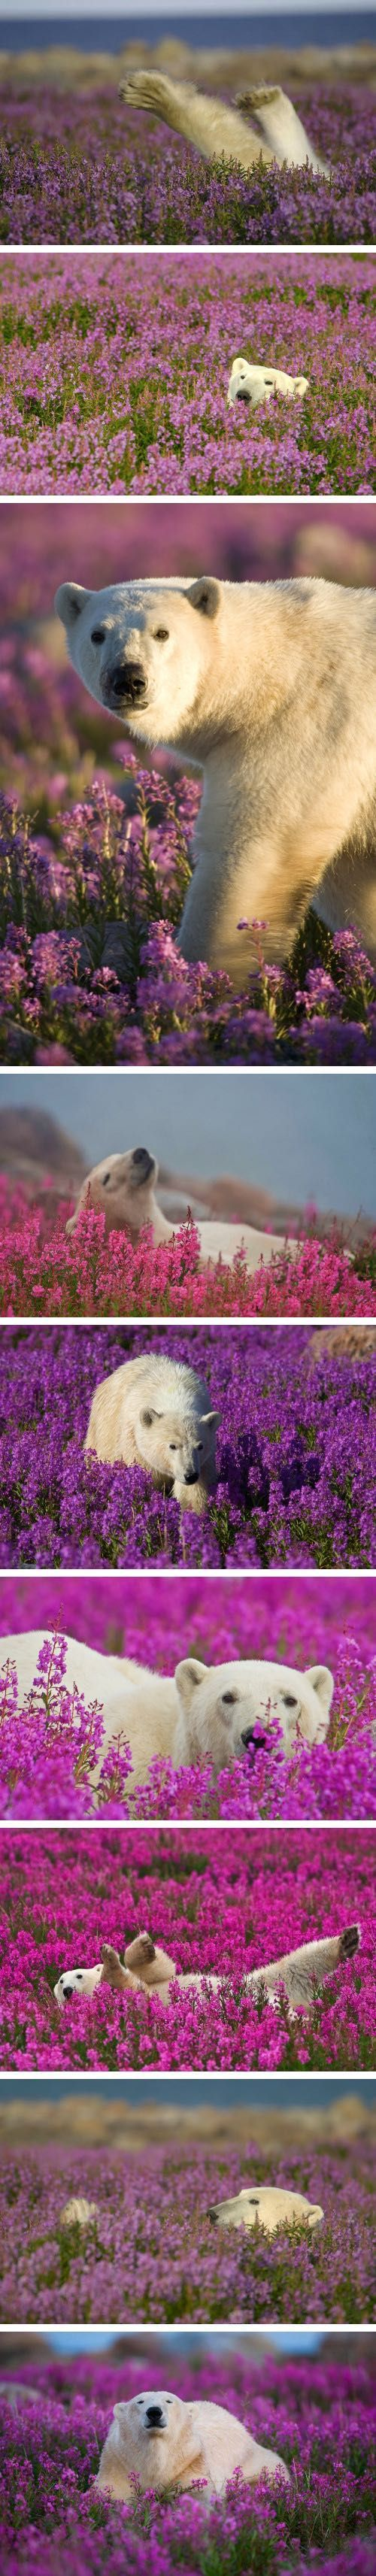 Polar Bear Spring Time :)